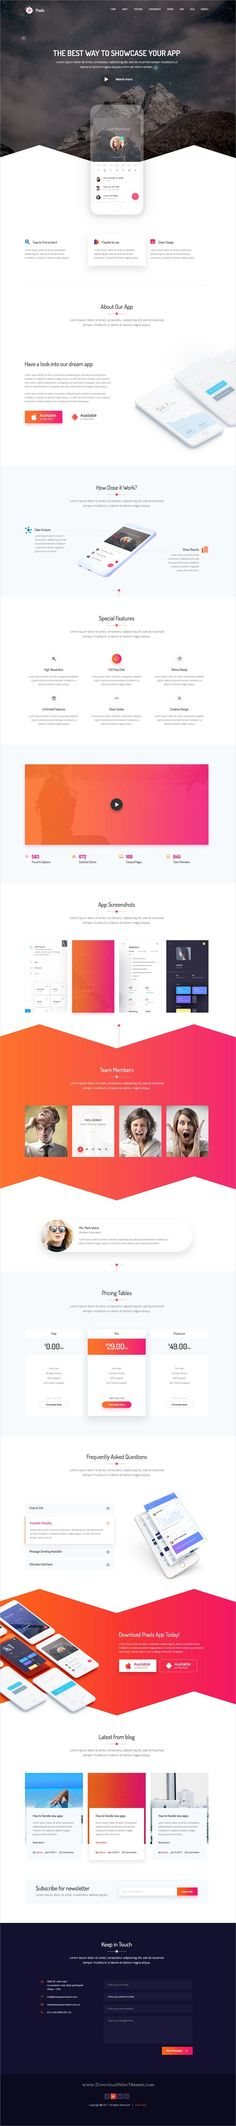 Pixels is clean and modern #design PSD template for #creative app #landing page website with 10 homepage layouts and 17 layered PSD pages download now..